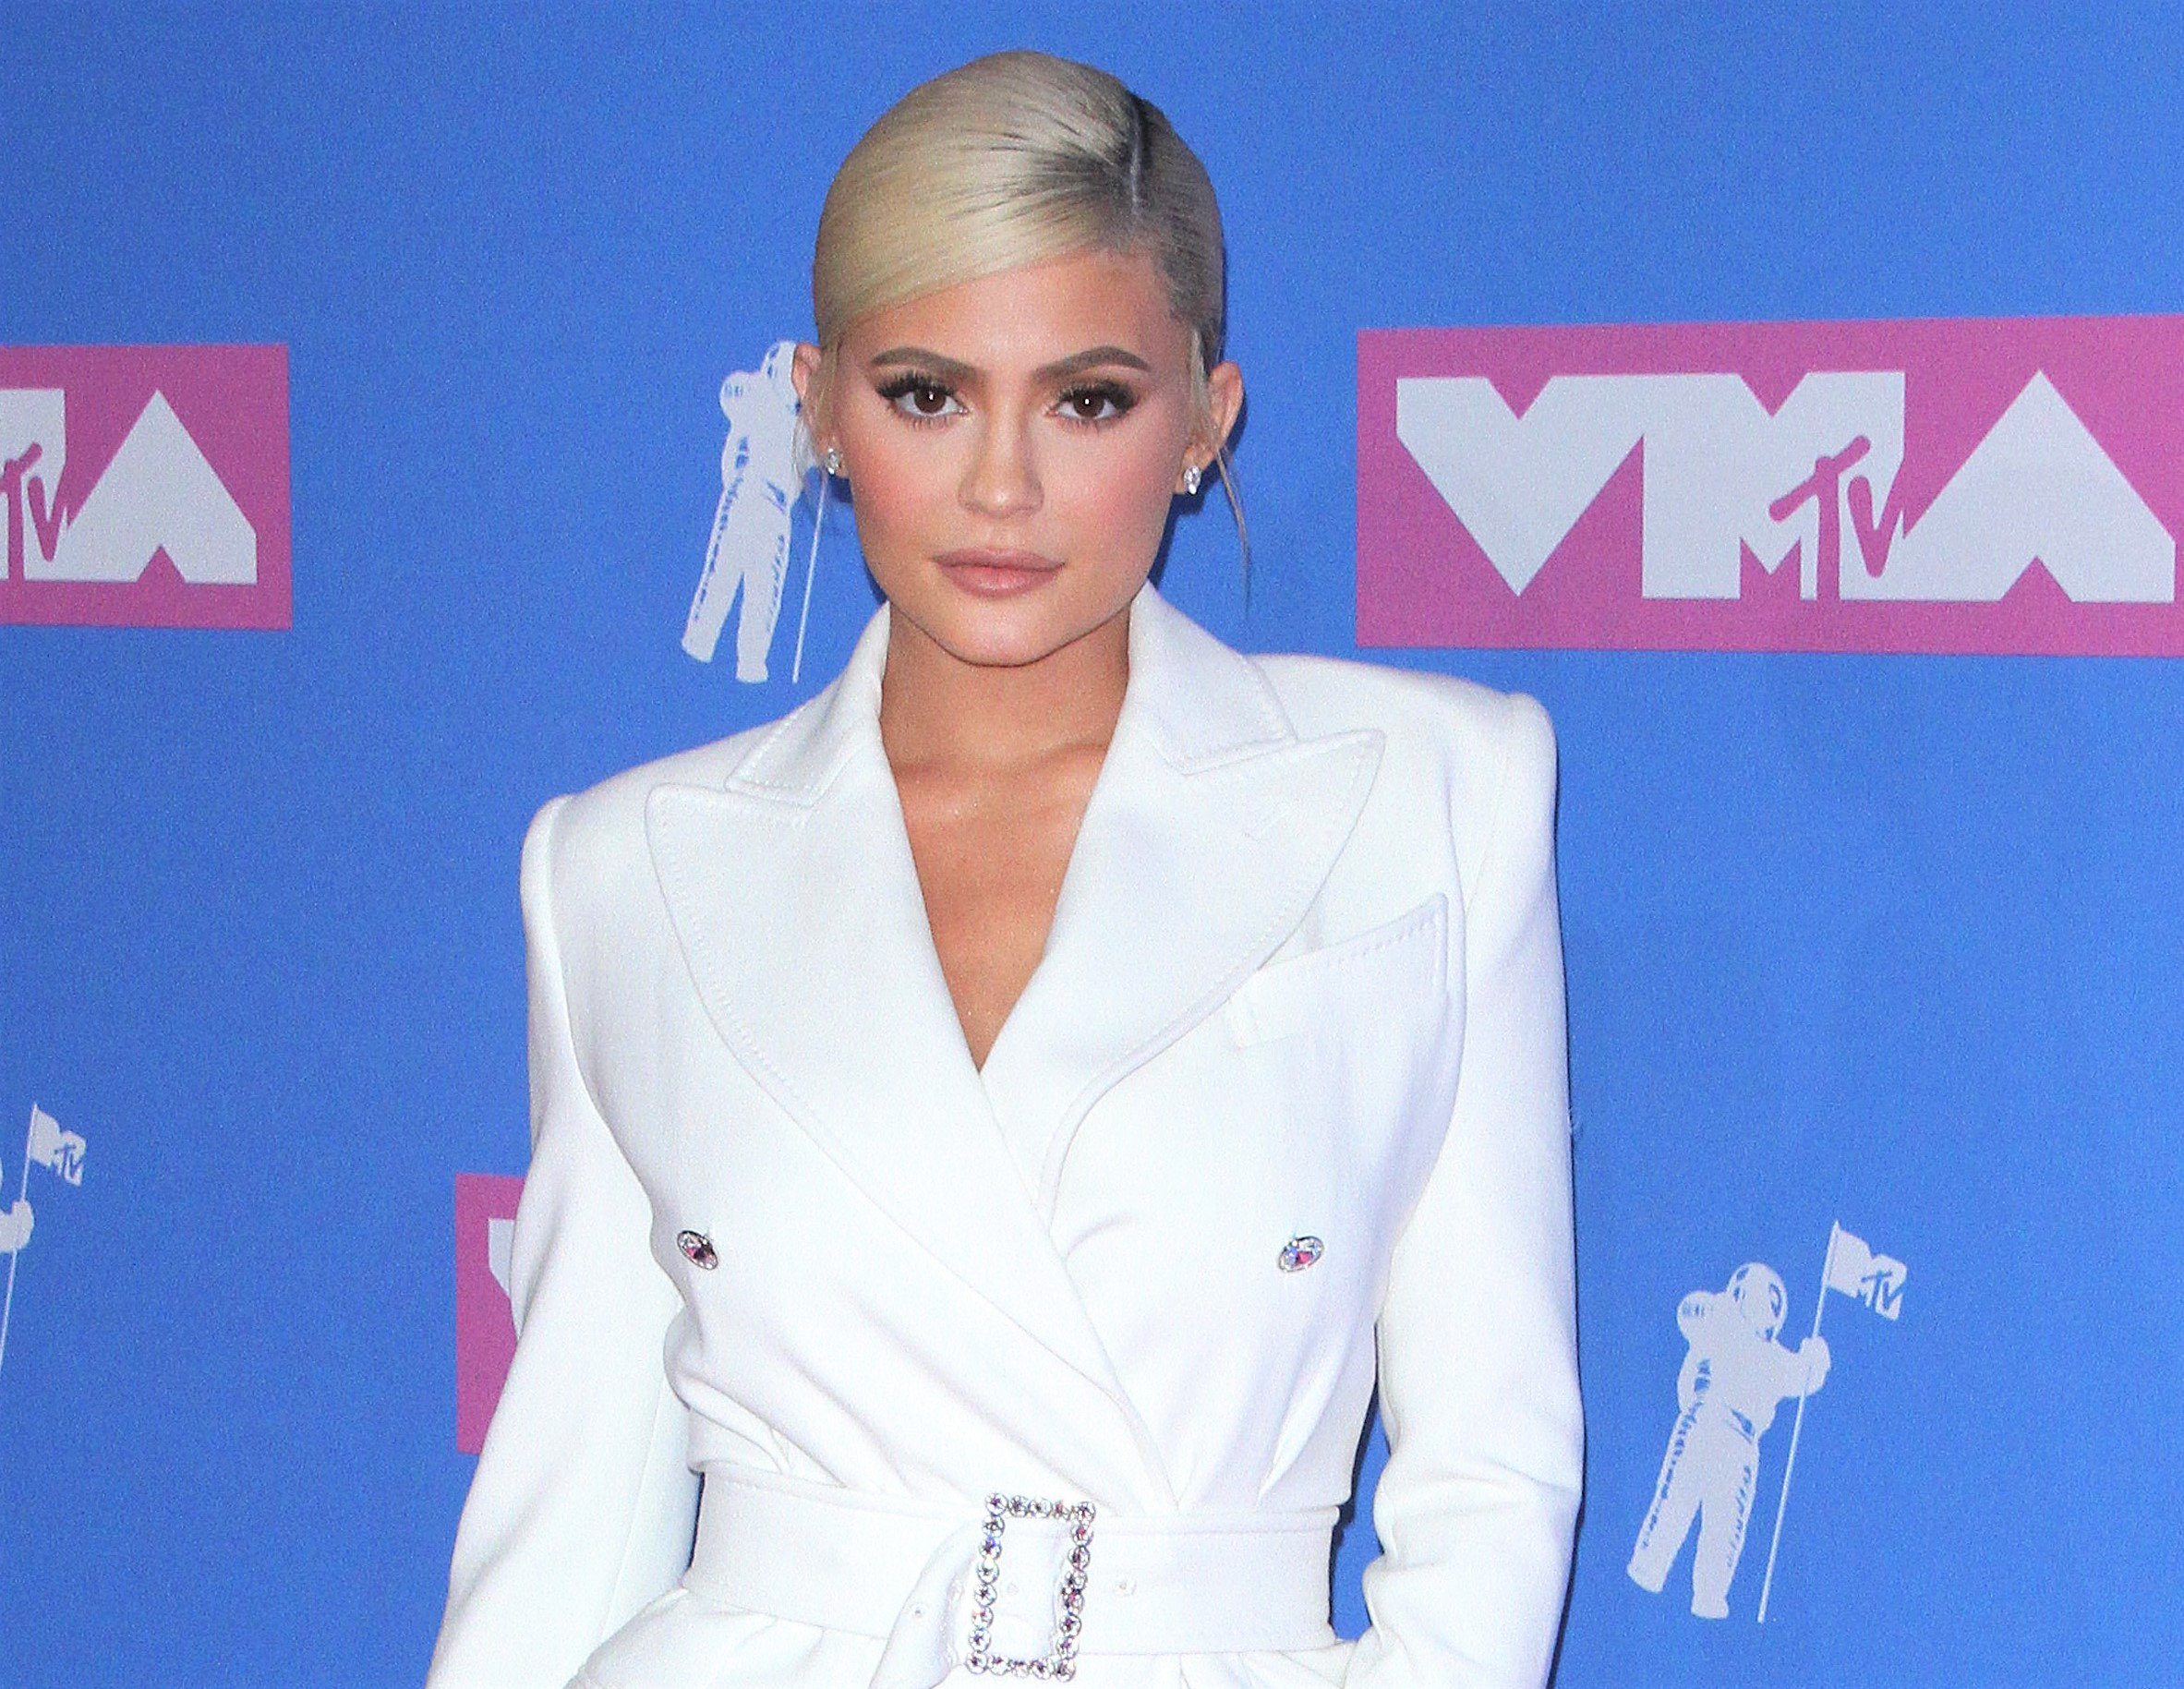 Kylie Jenner Blonde Hair White Suit MTV VMA 2018